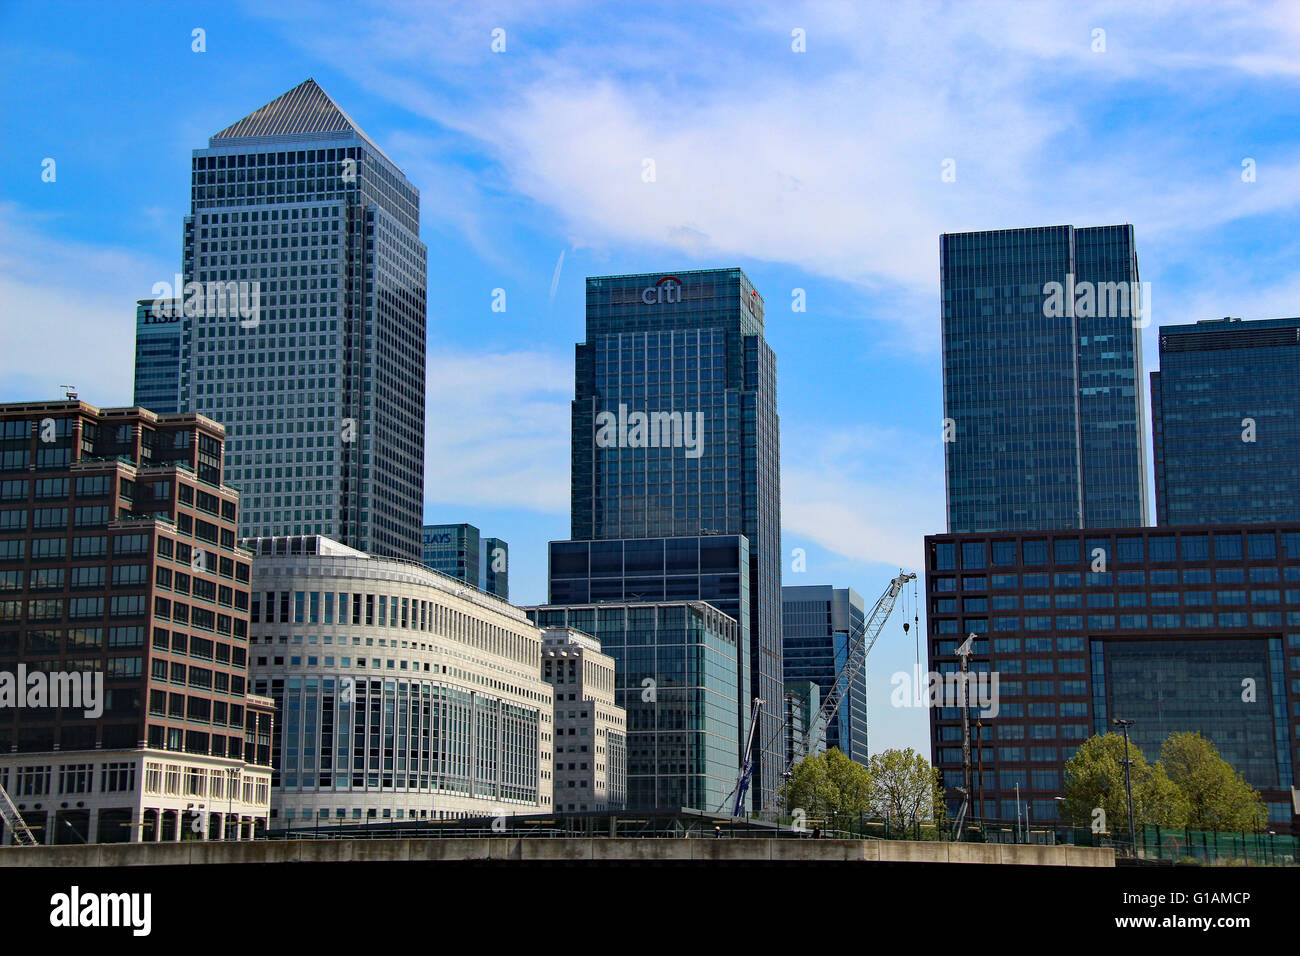 Canary wharf Thompson Reuters office London England Modern office buildings - Stock Image